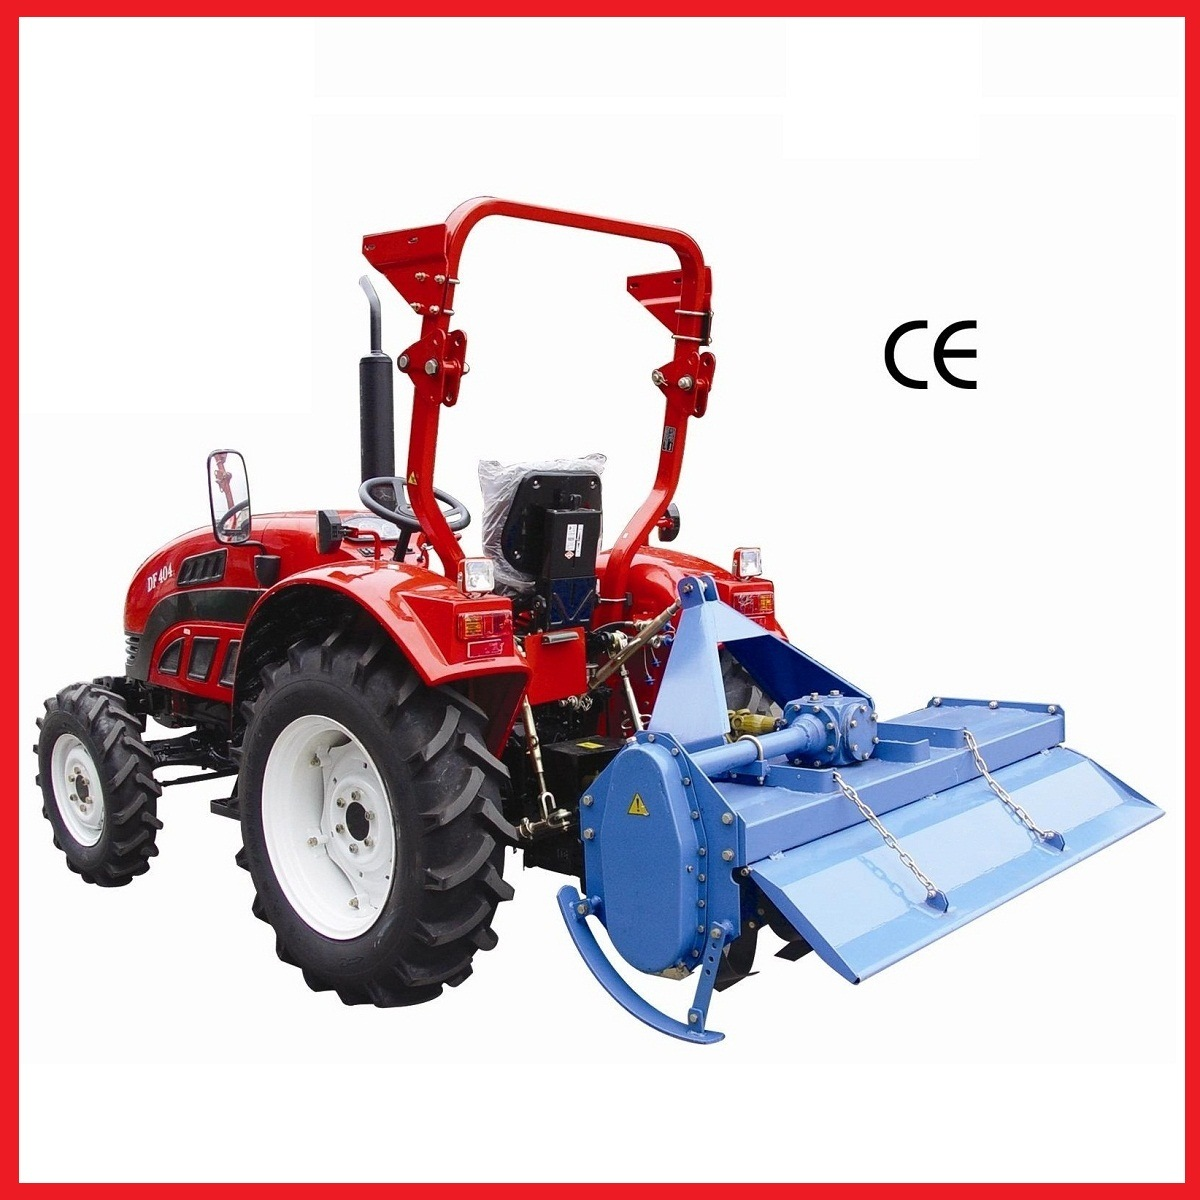 Farm Machinery, Equipment, Tractor Attachments & Implements